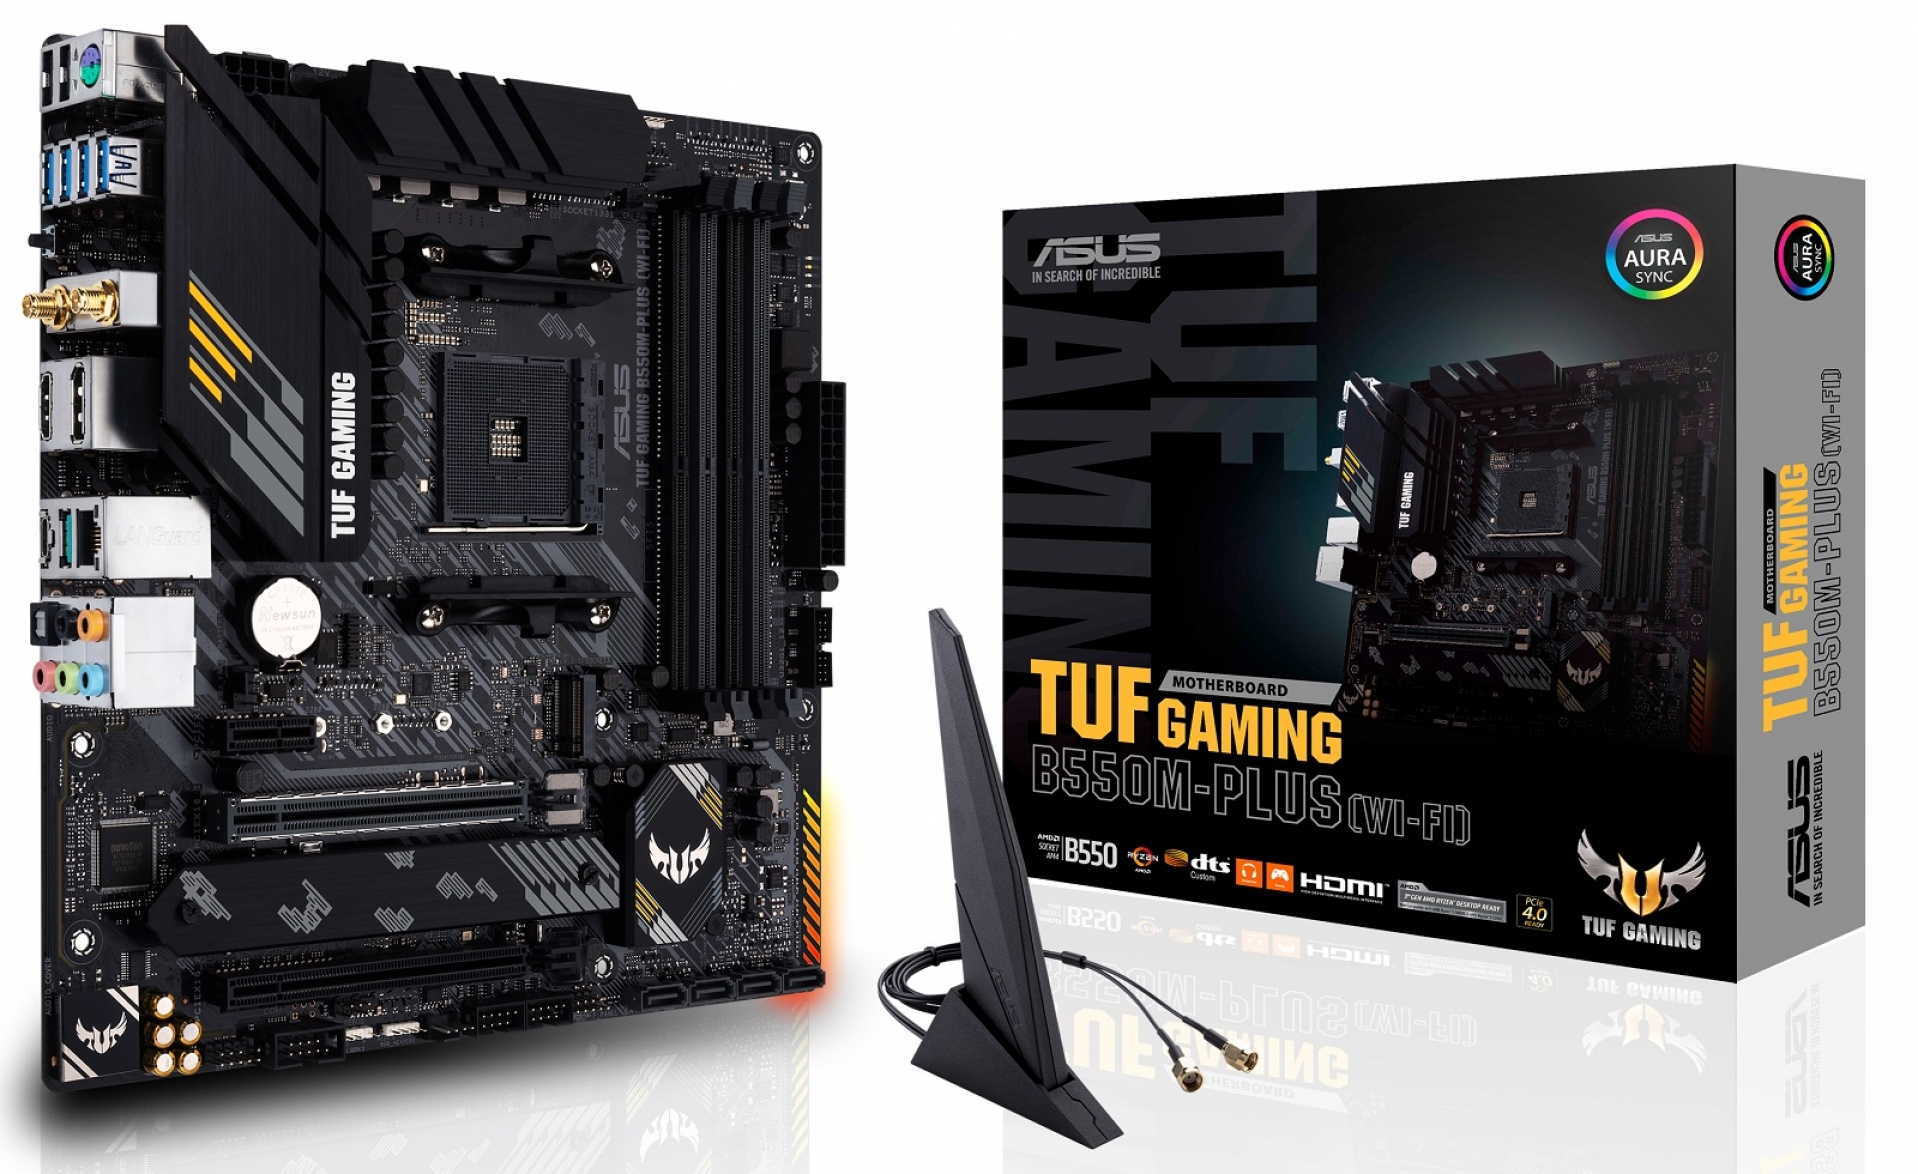 ASUS launches its range of AMD B550 motherboards - B550 has something for  everyone | OC3D News